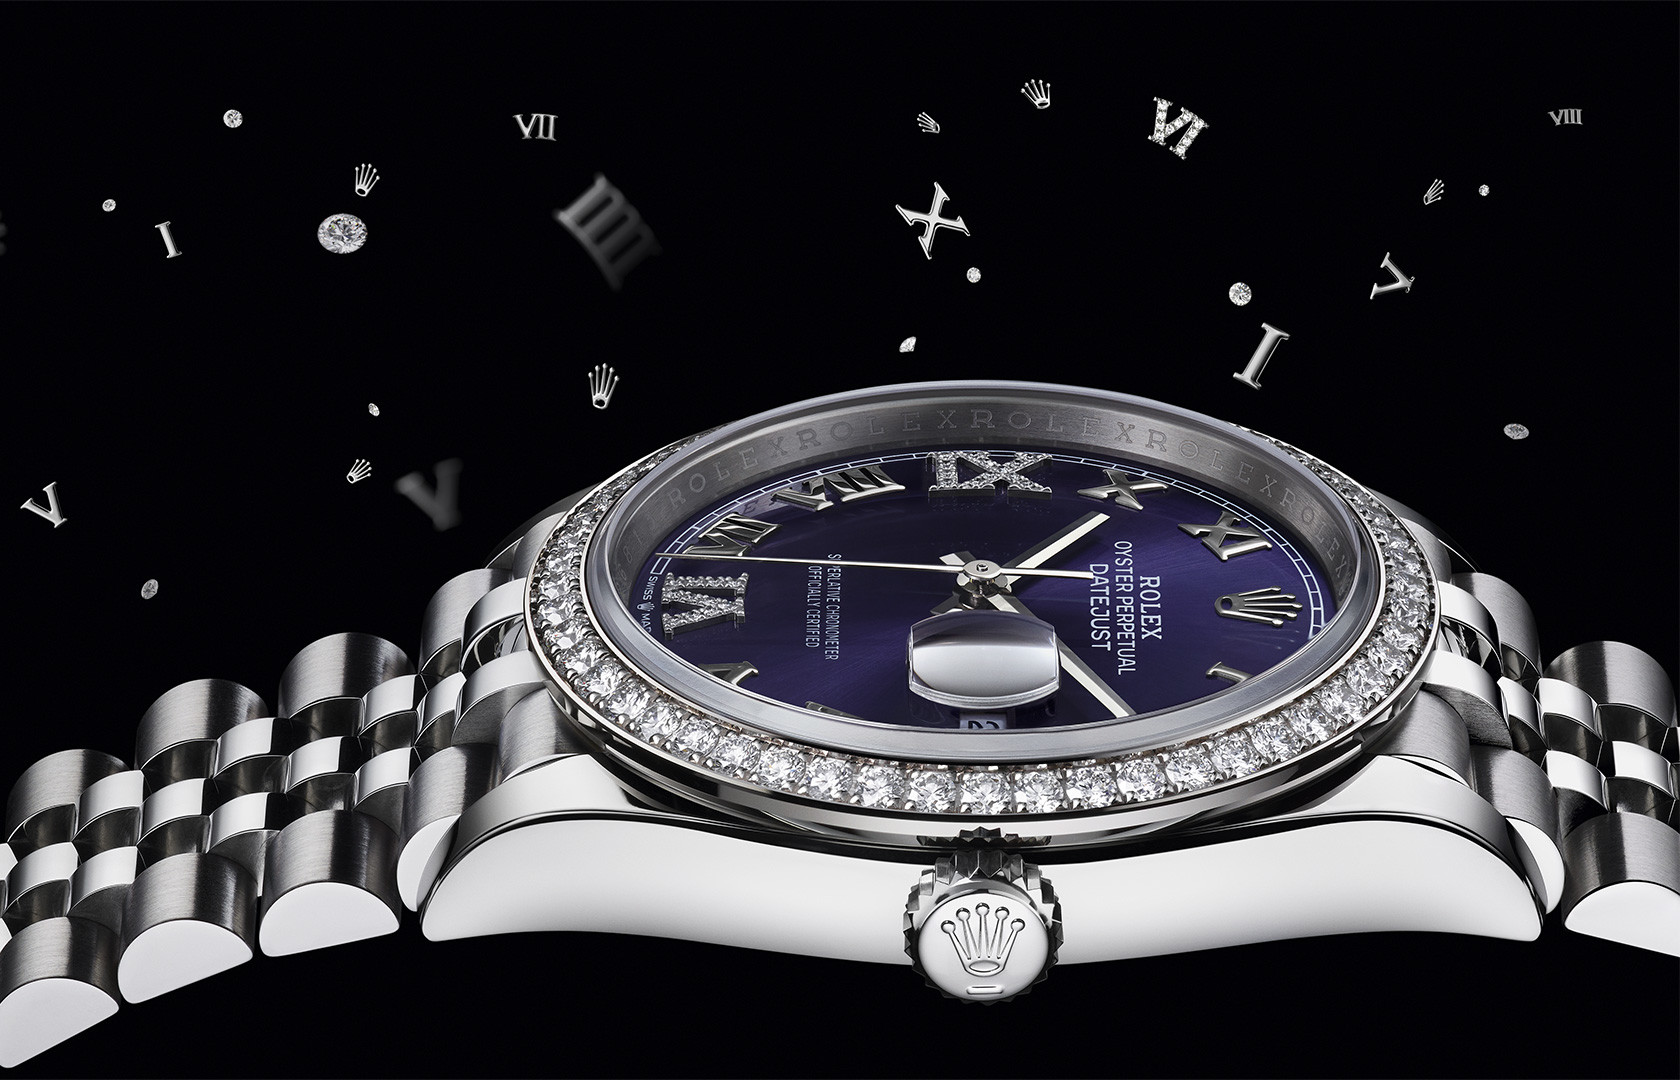 Rolex Uhr aus der Festive Collection